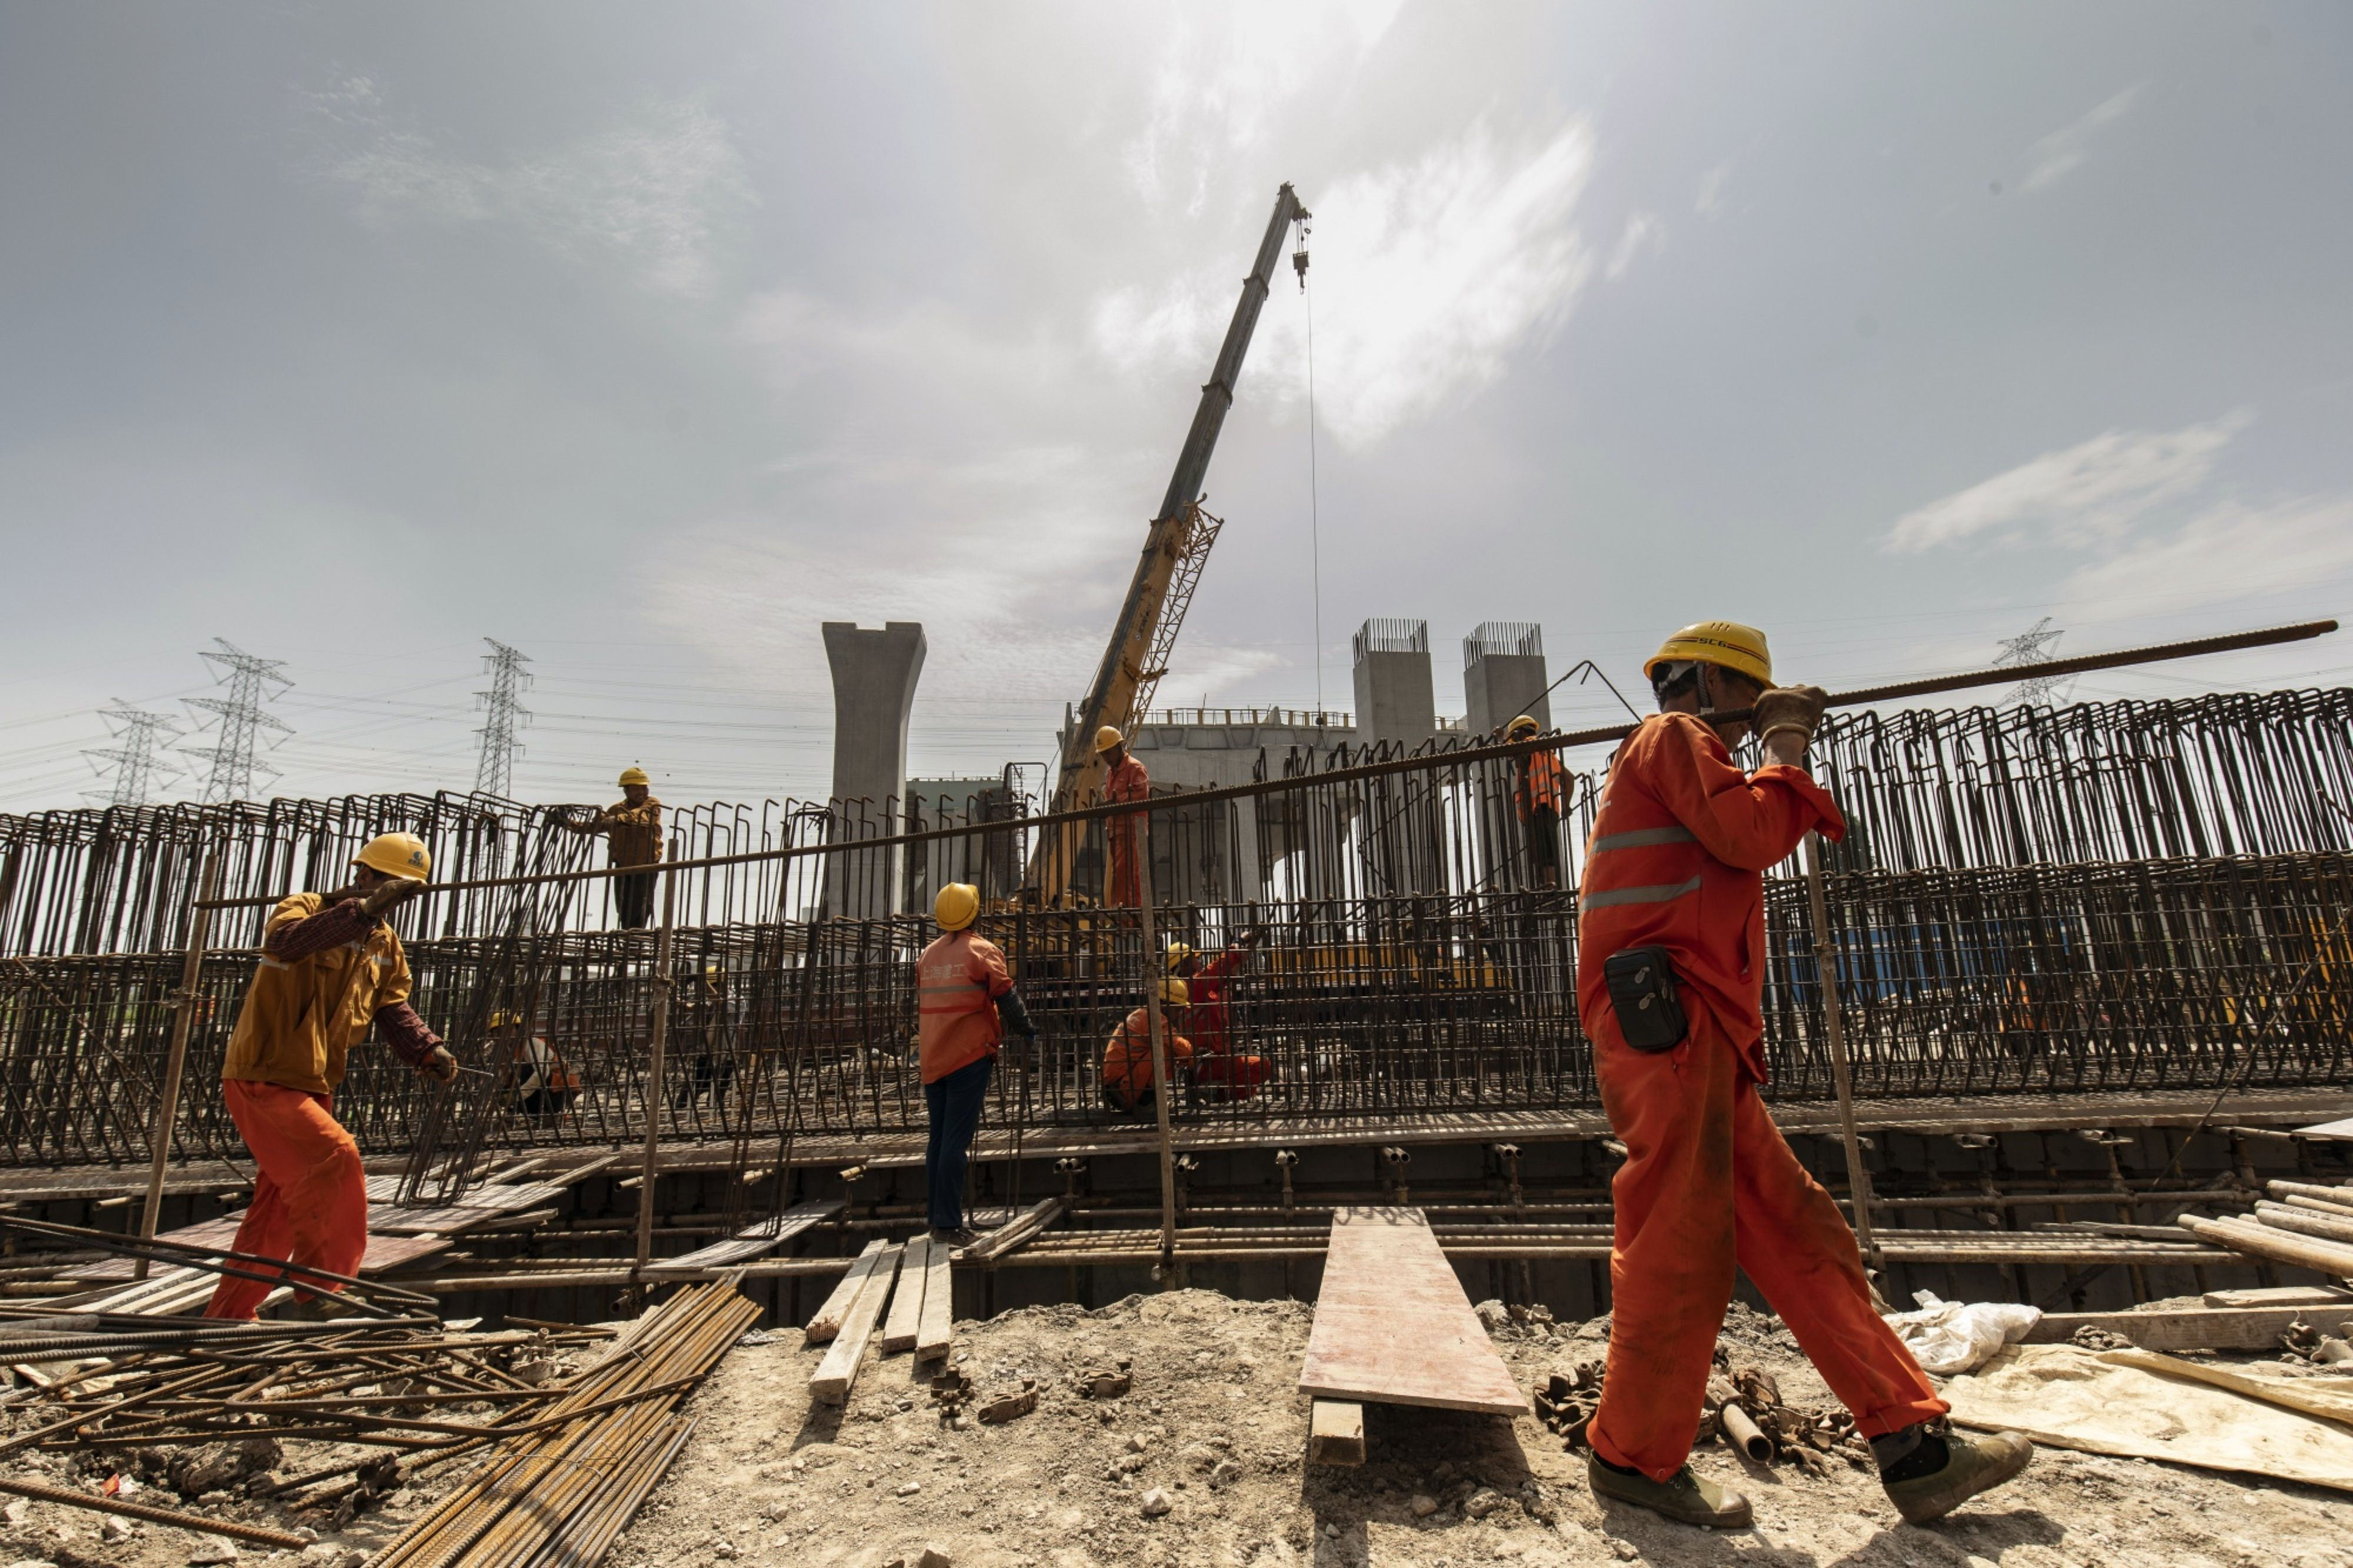 Workers carry a steel bar at the construction site on the outskirts of Shanghai on June 12. Photo: Bloomberg